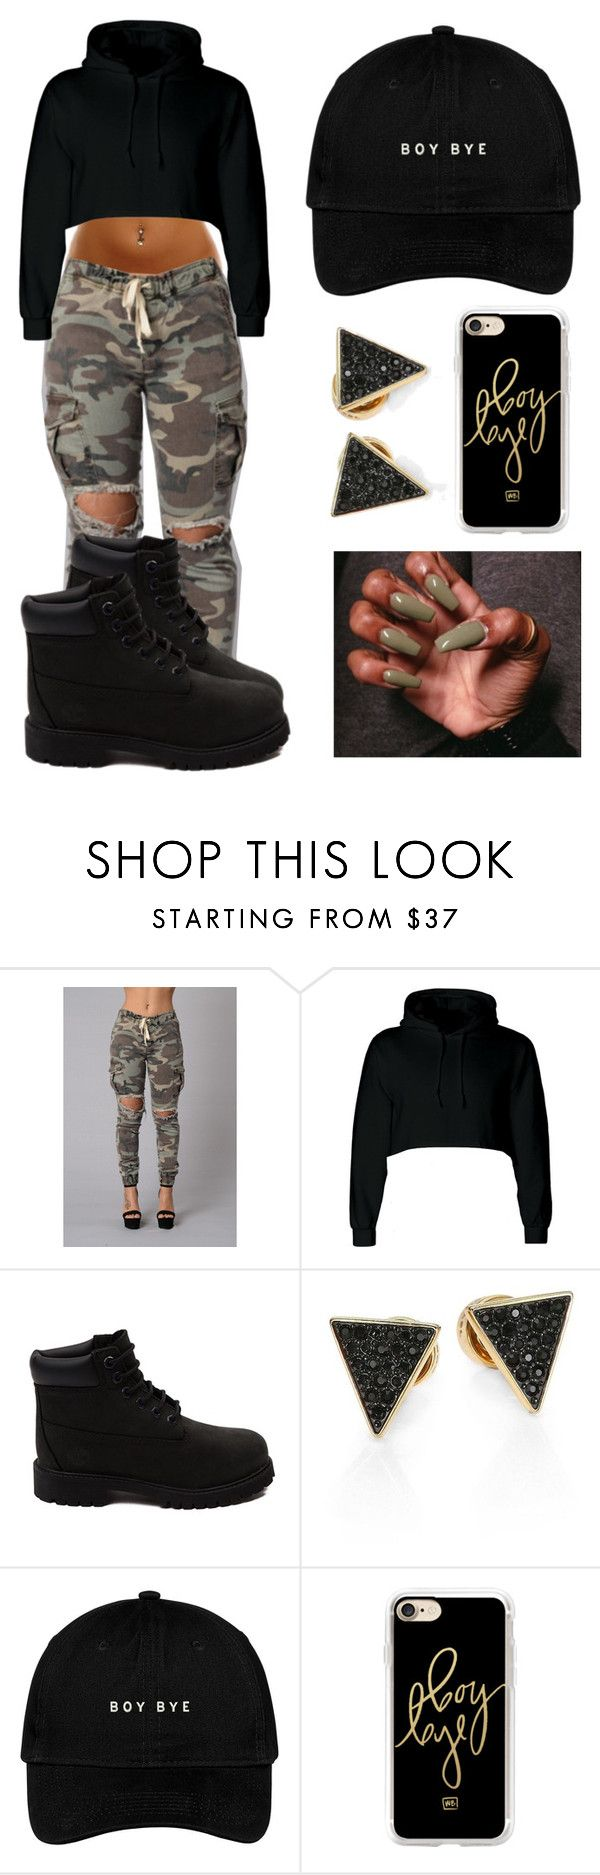 """""Boy Bye"" ✖️"" by jayleewarren ❤ liked on Polyvore featuring Timberland, Michael Kors and Casetify"